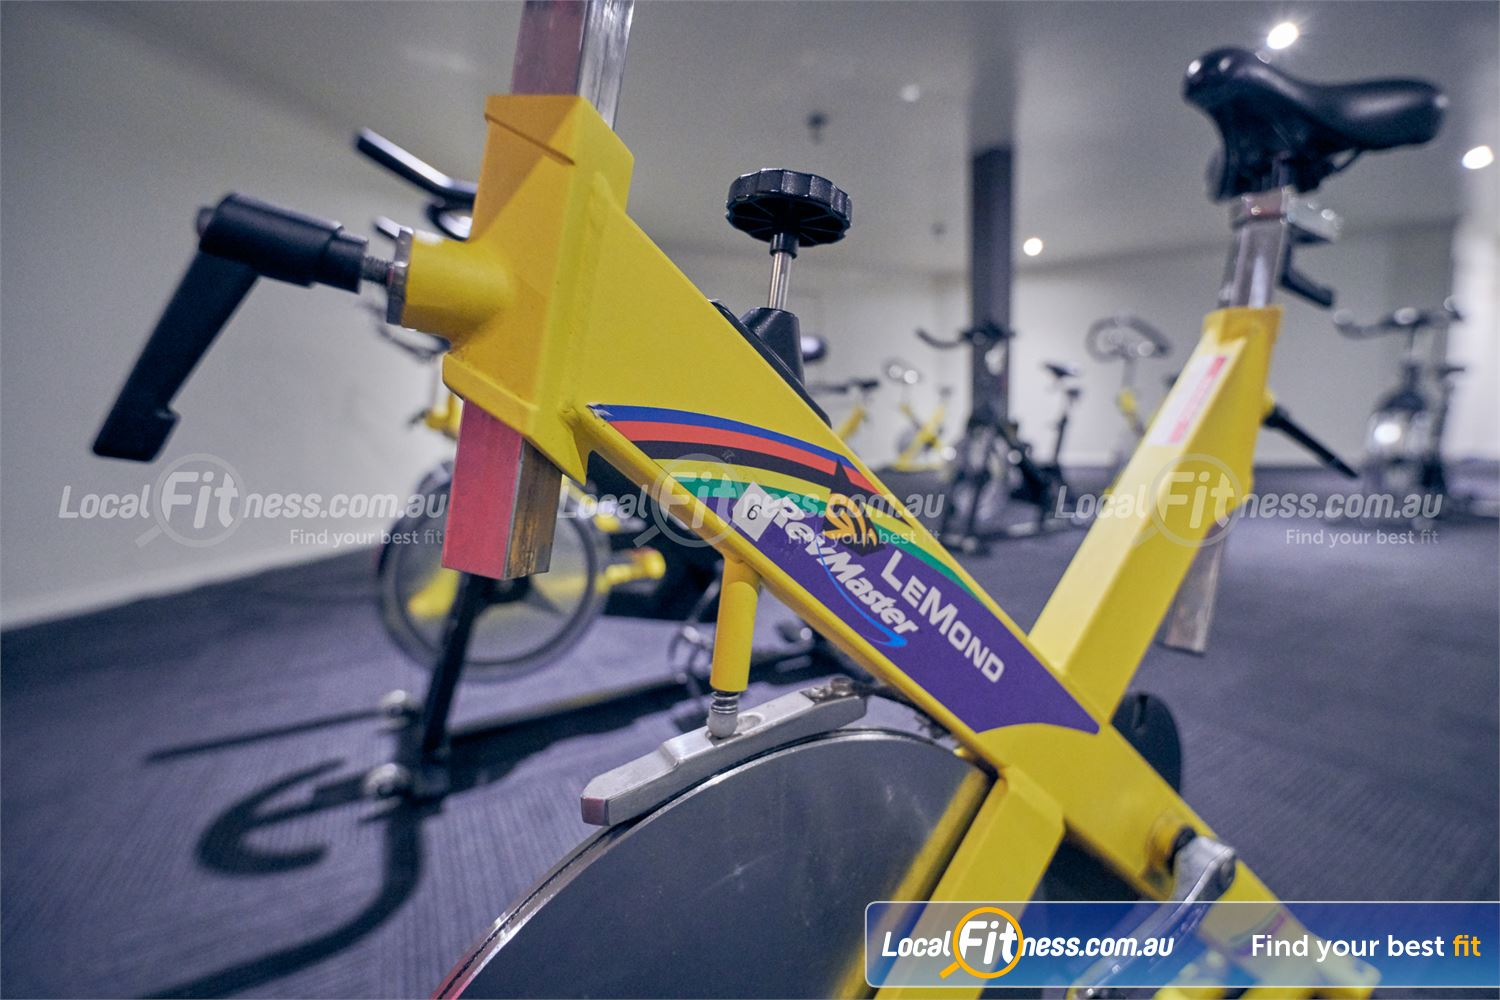 Fernwood Fitness Bulleen Our Bulleen cycle studio uses state of the art Stages cycle bikes.